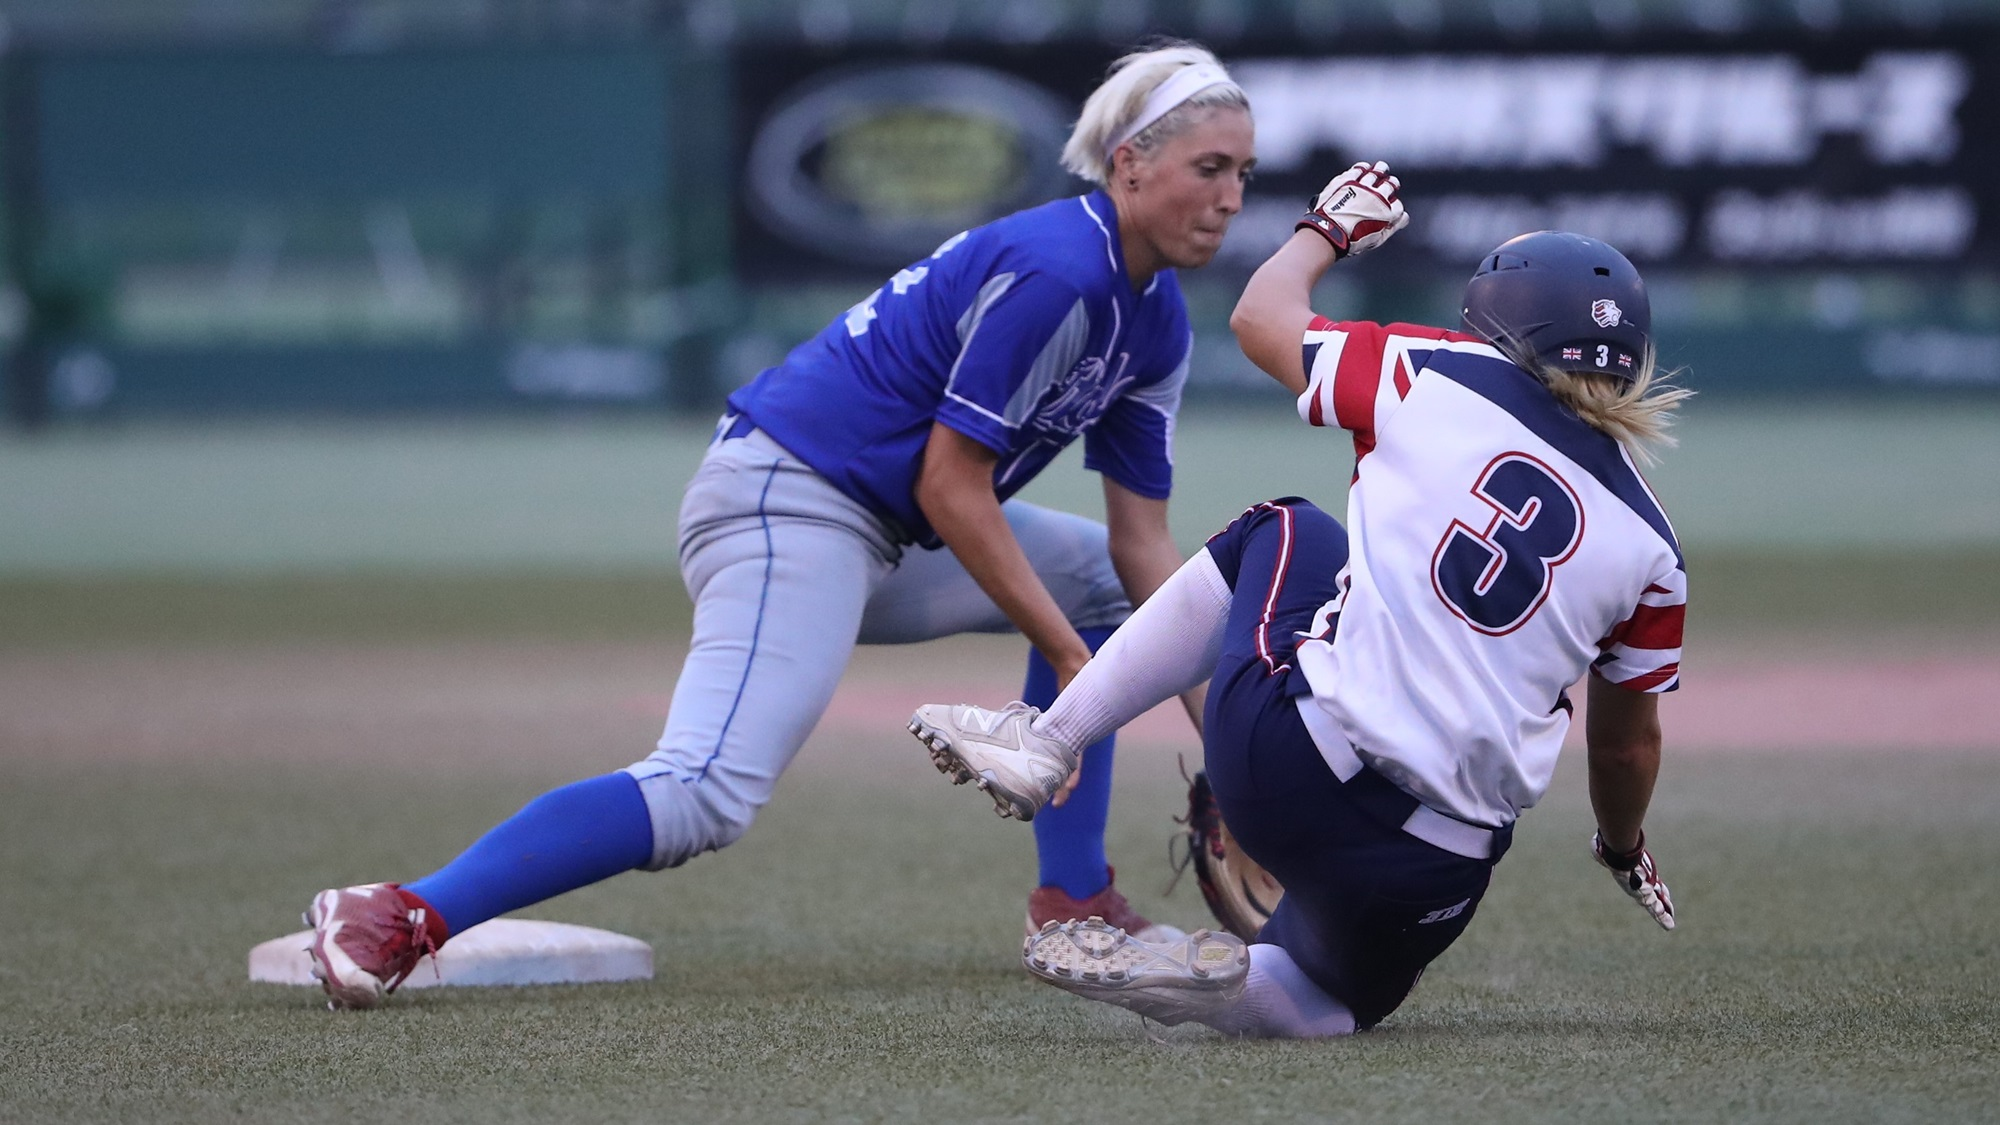 Great Britain lost a few chances to score. Here Amanda Fama tags for the out Victoria Charters